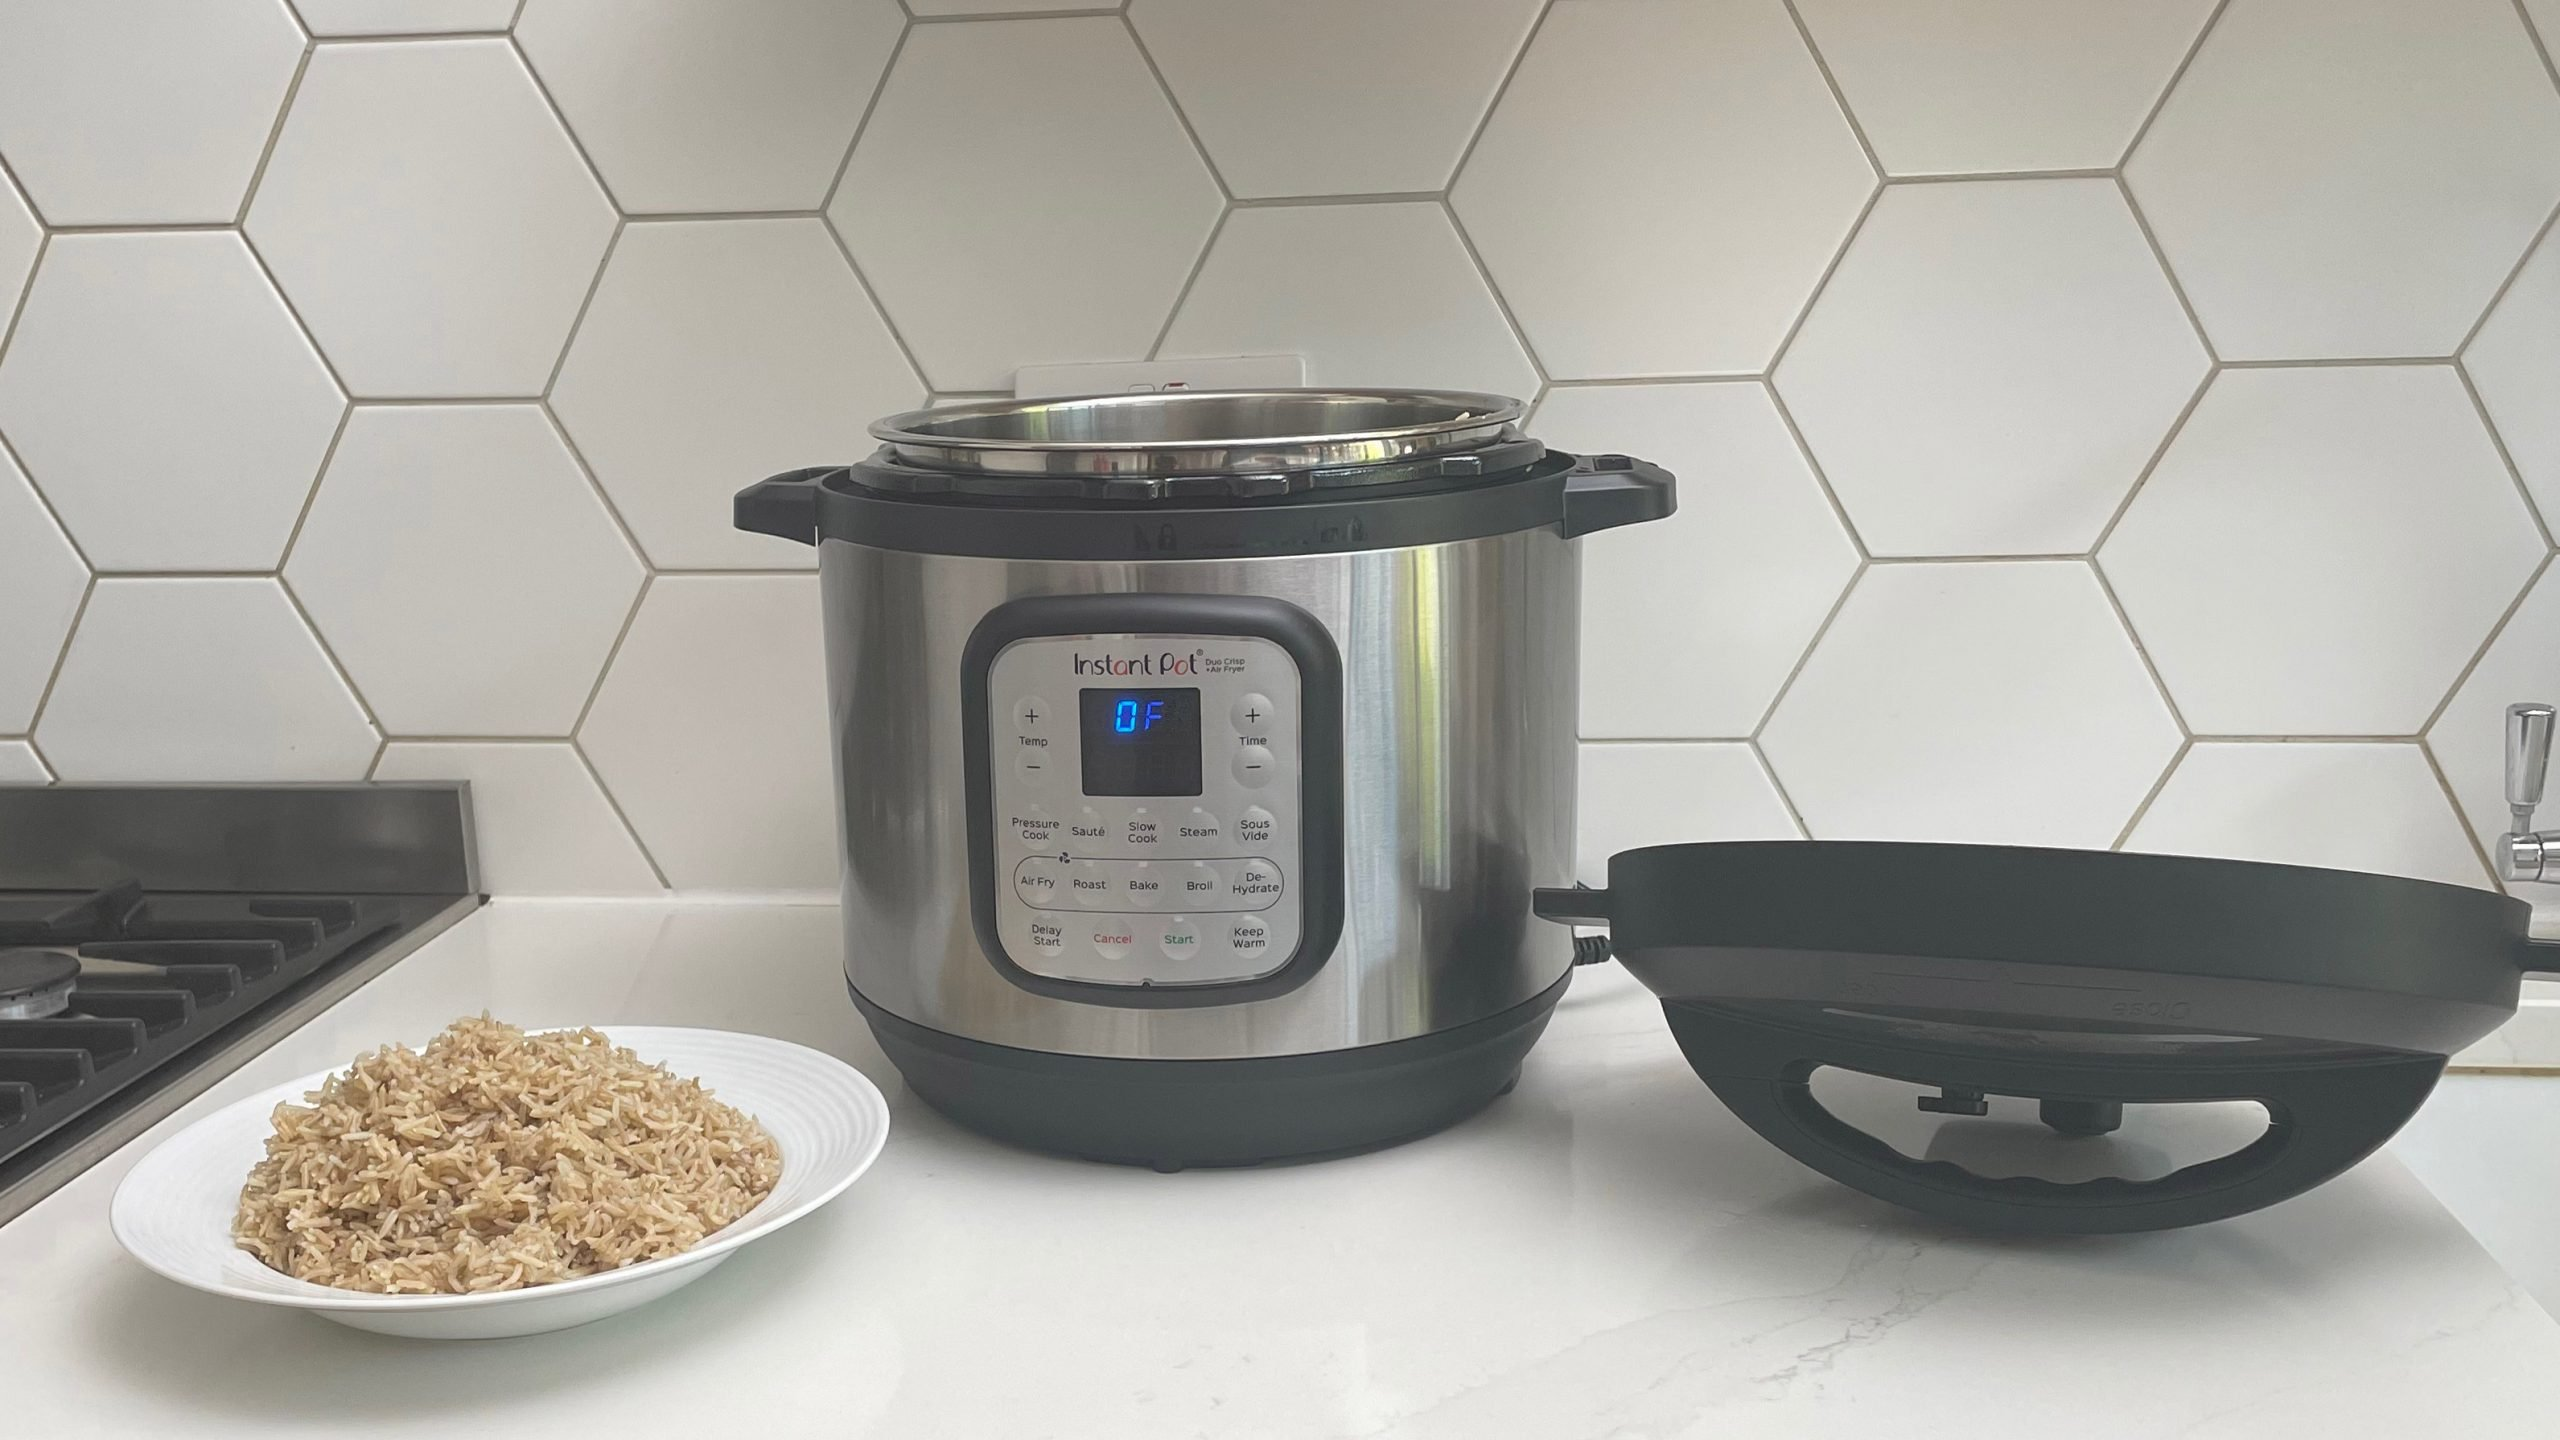 Instant Pot Duo Crisp & Air Fryer on a kitch countertop next to a bowl of rice